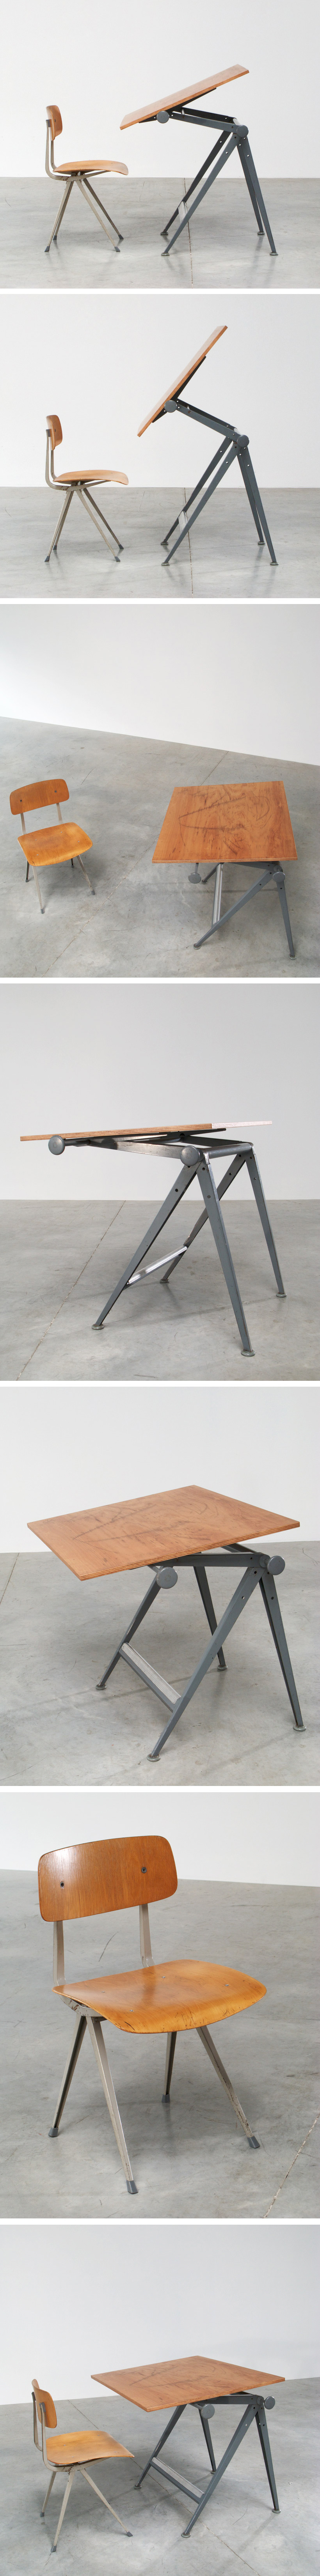 Rietveld Wim Reply drafting table and Kramer Friso Result chair Large